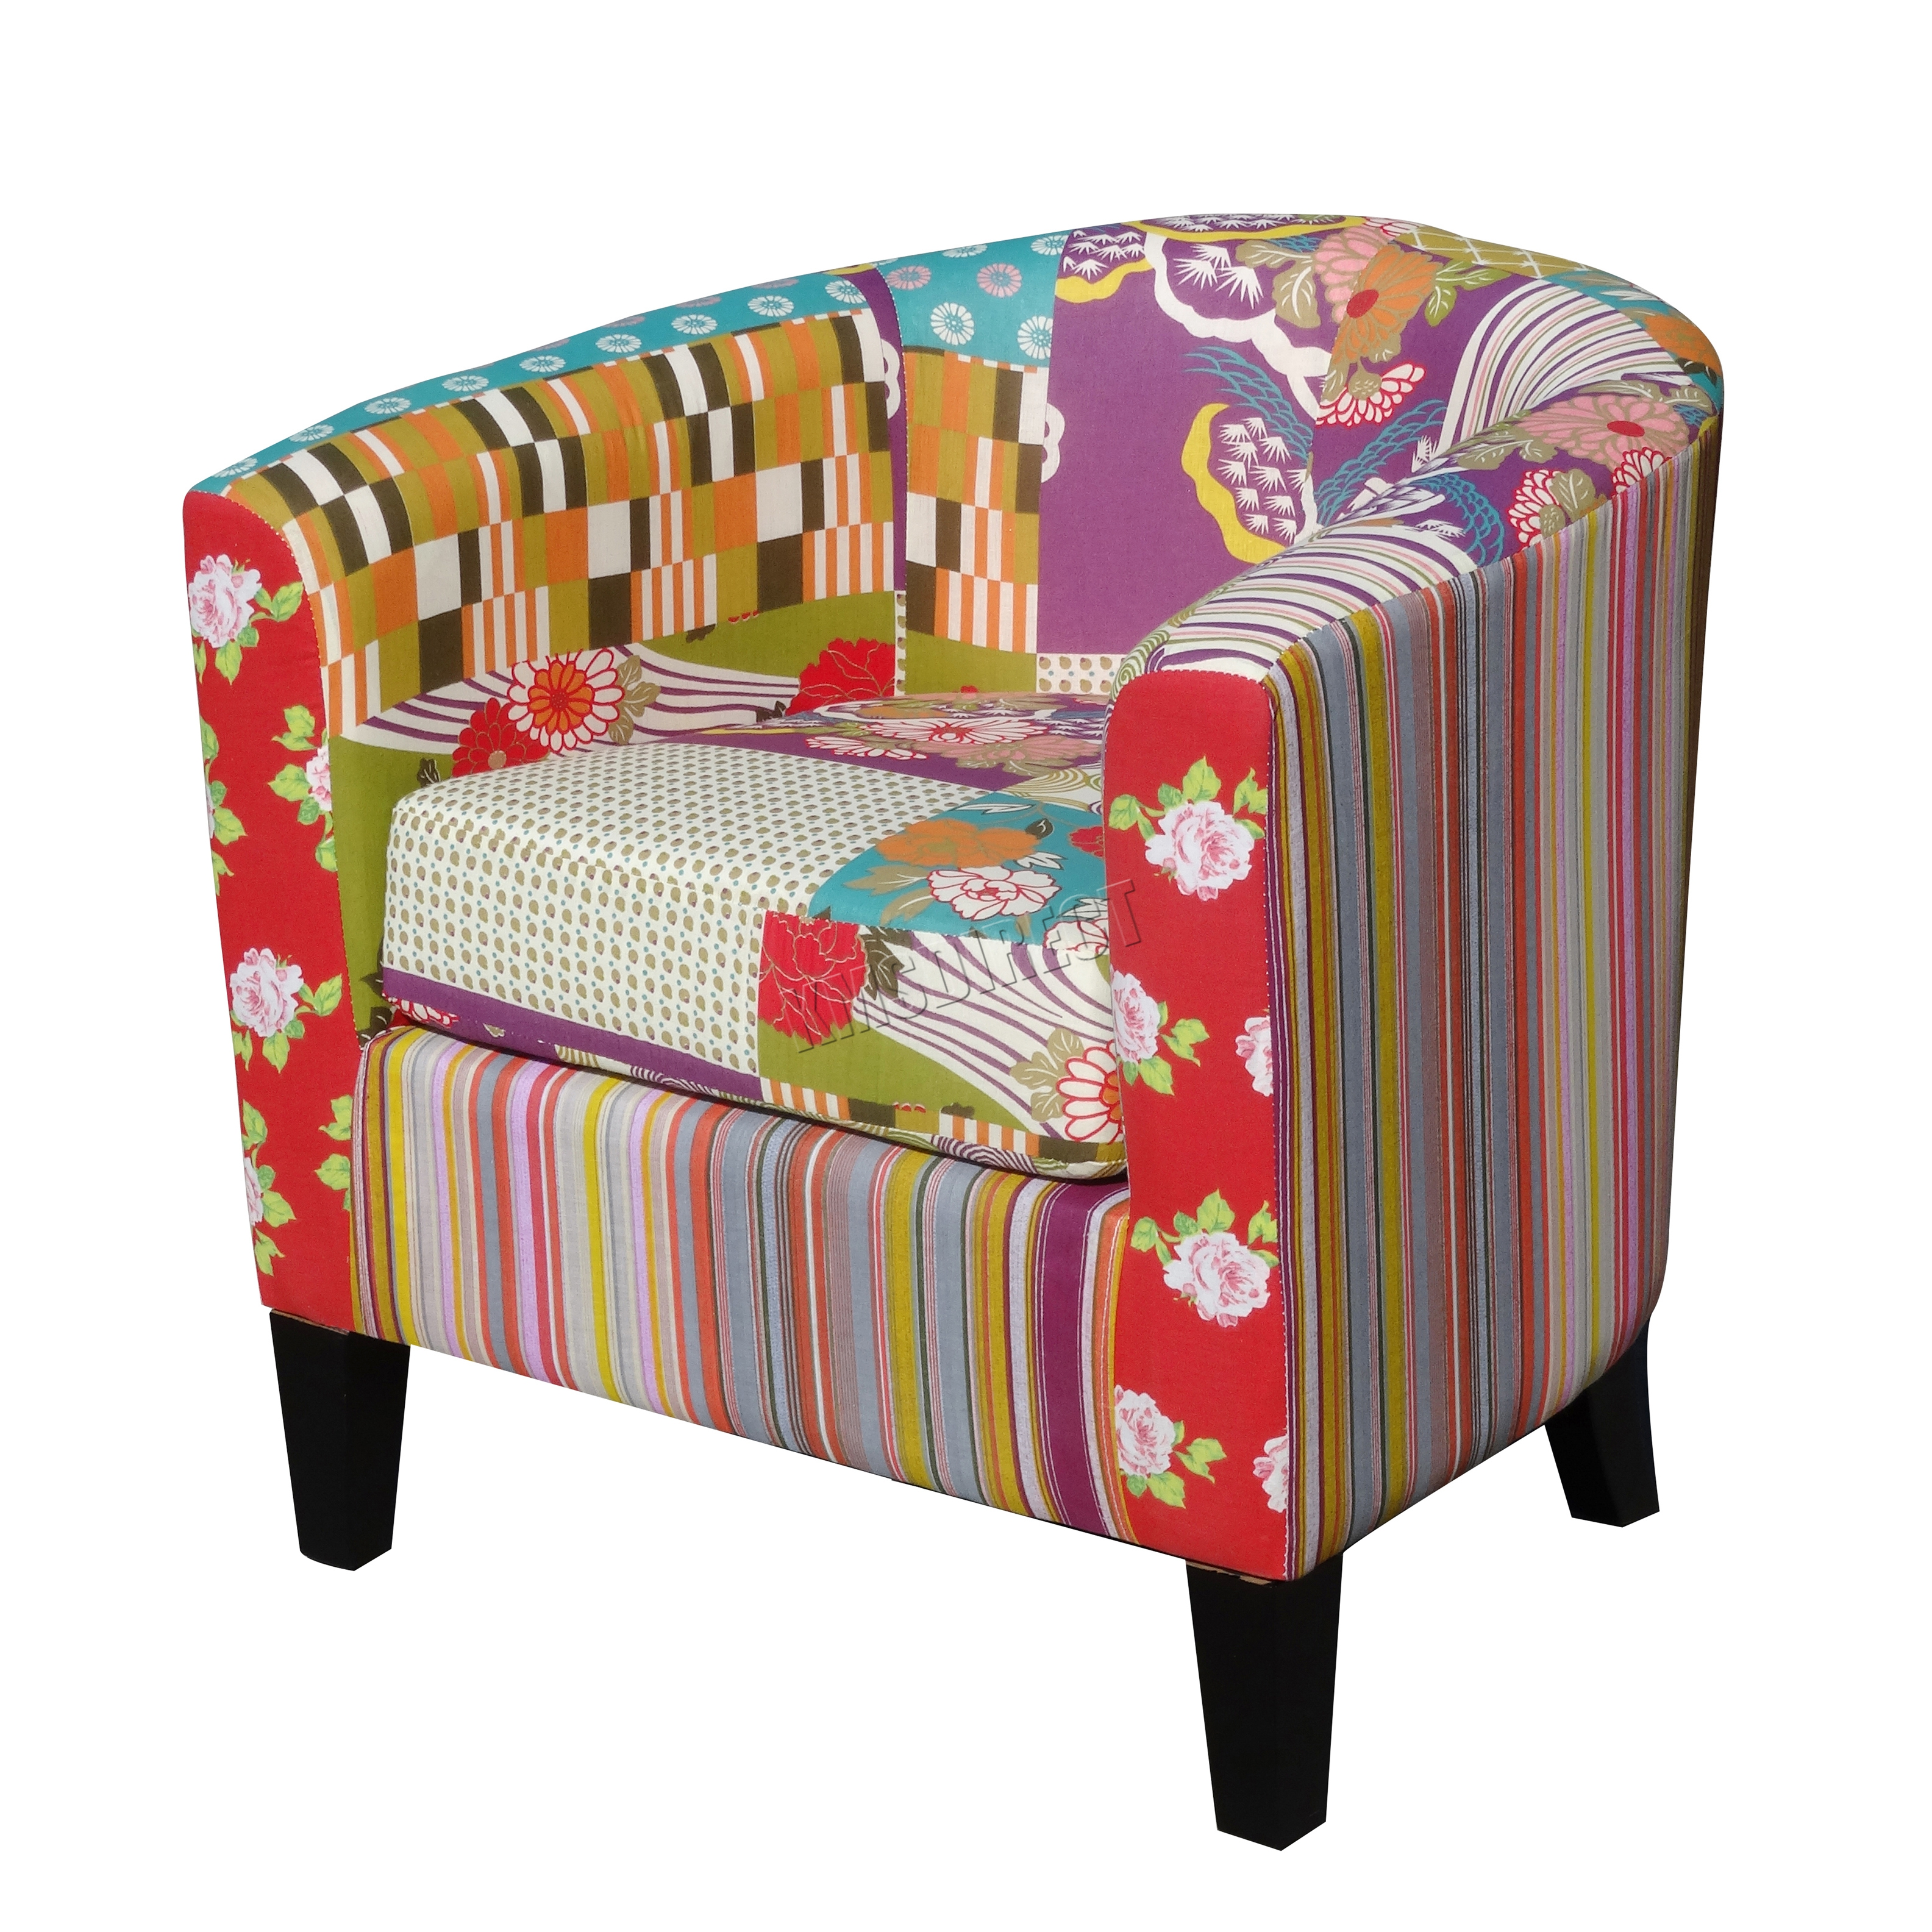 Foxhunter patchwork tub chair fabric vintage armchair seat for Retro space fabric uk